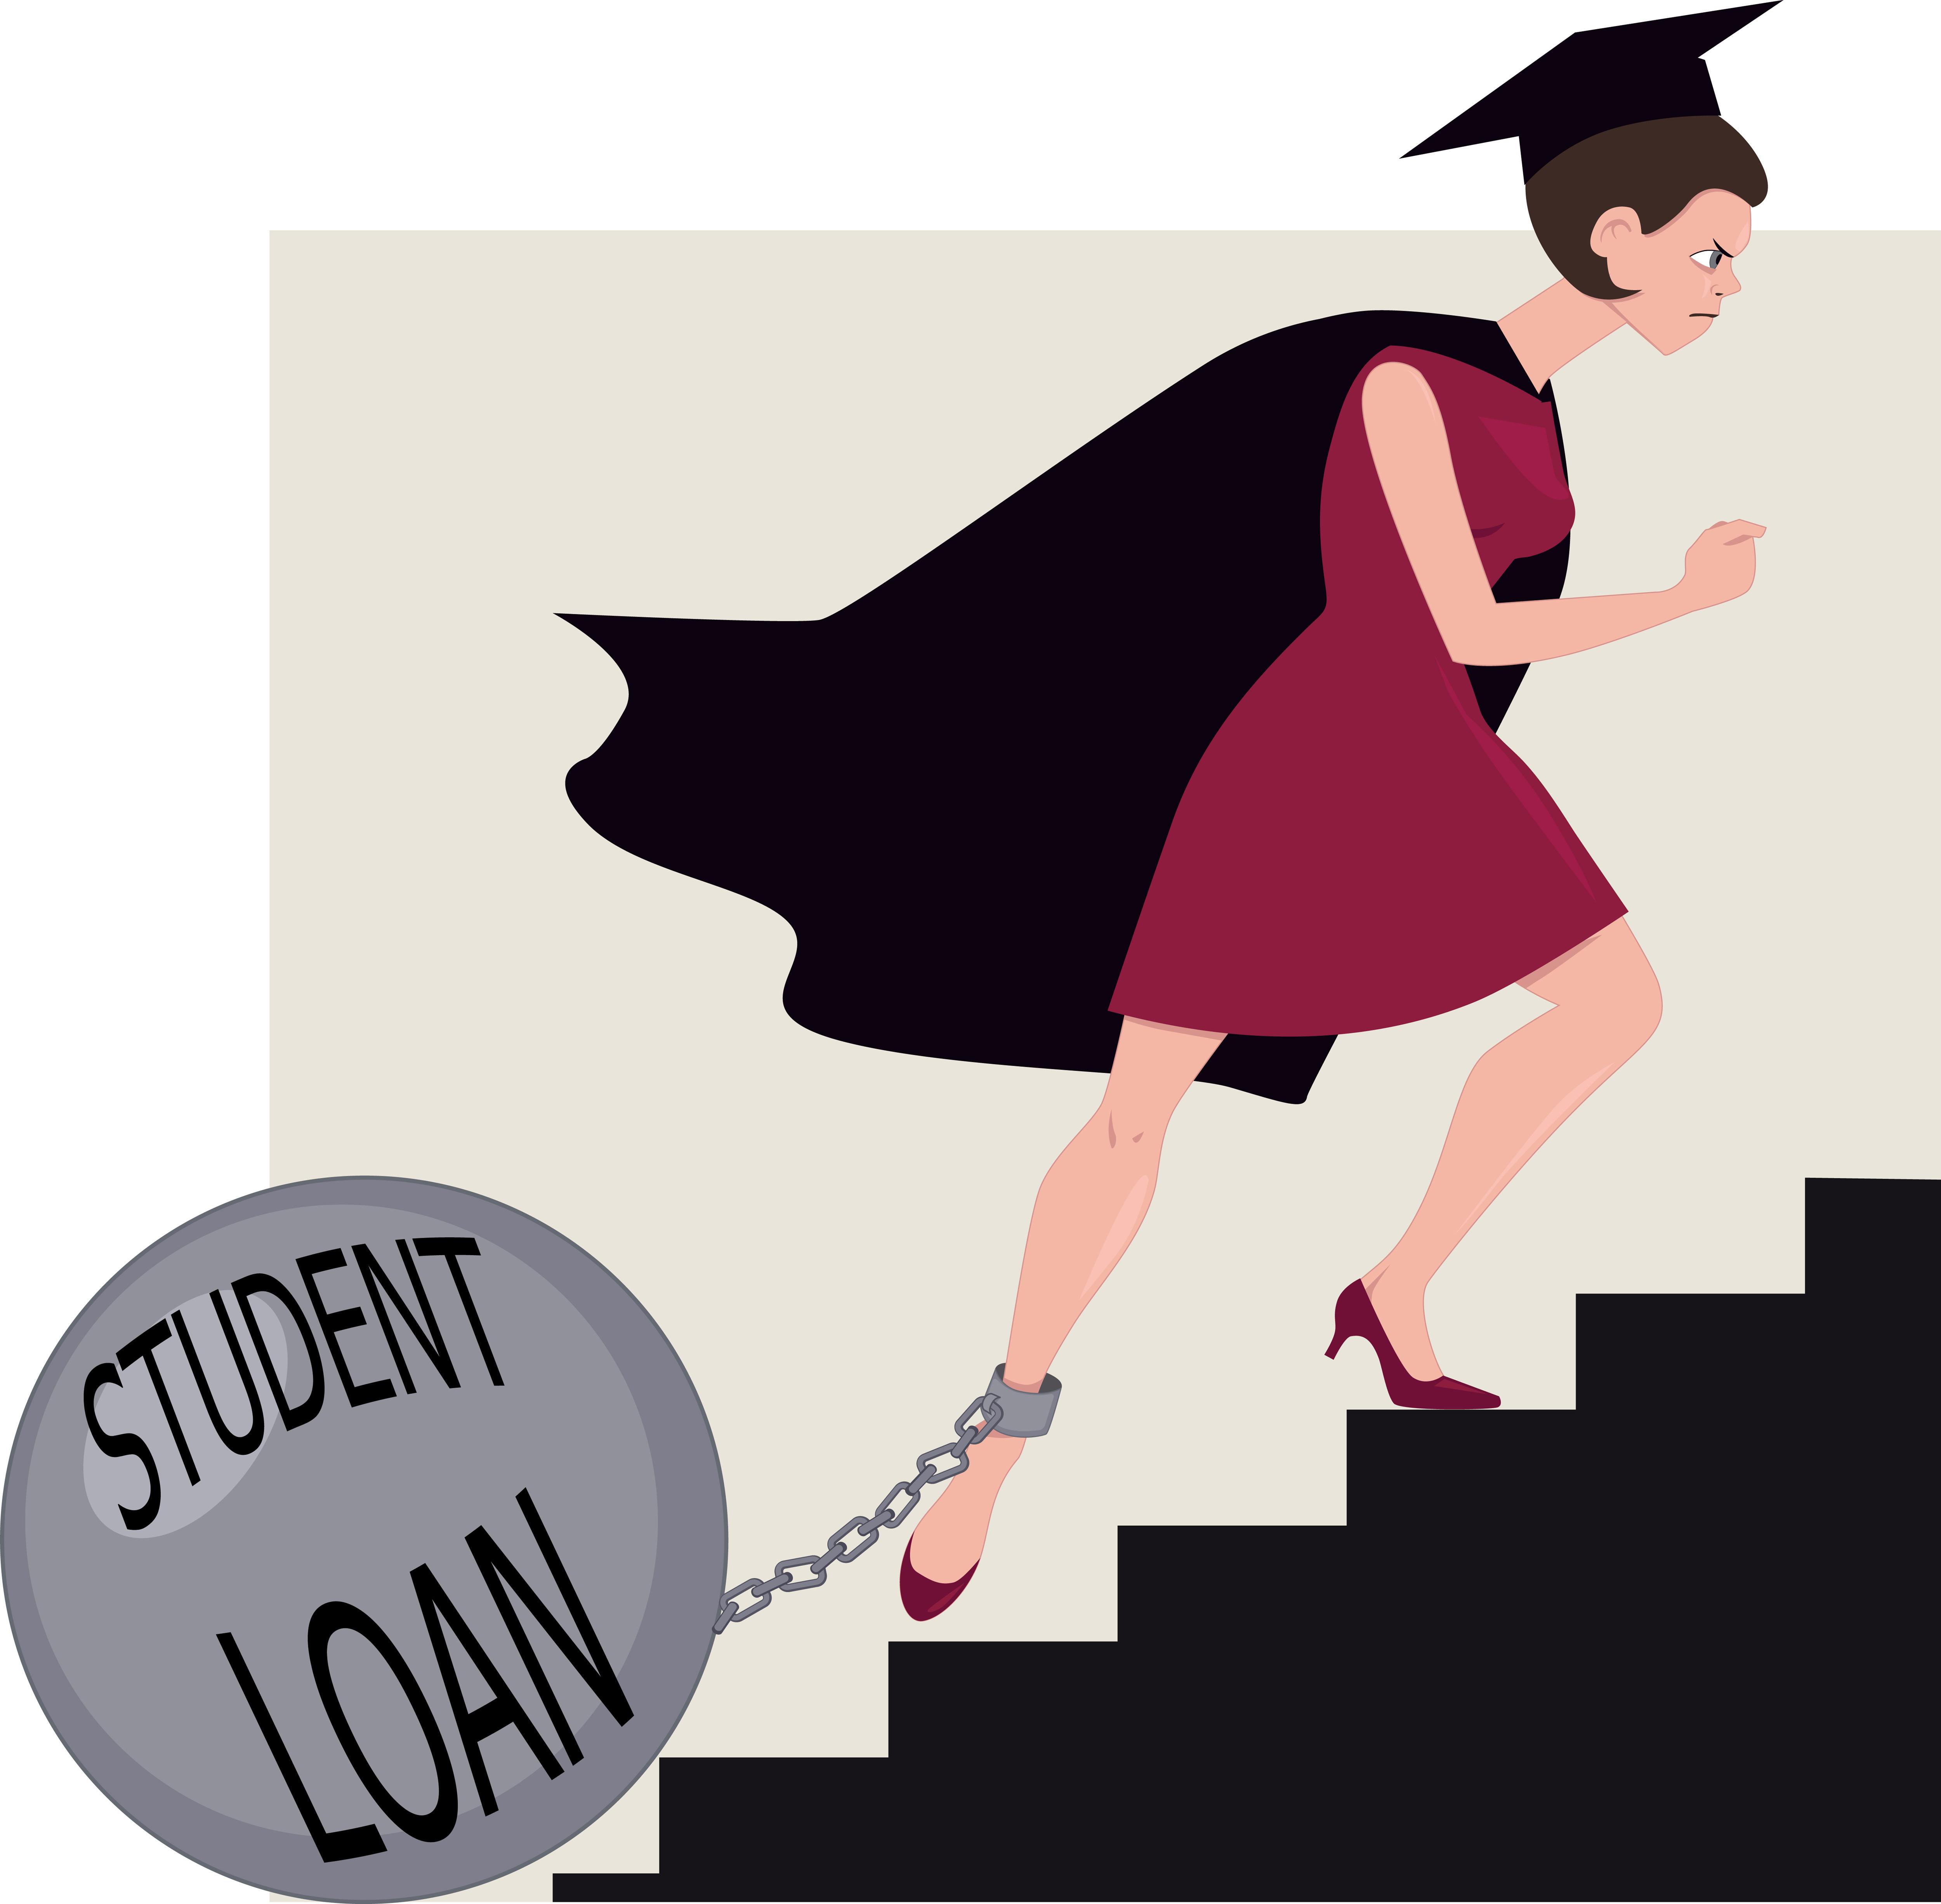 Student loan paid clipart svg download Survey: Student loan assistance helps lower employee stress ... svg download